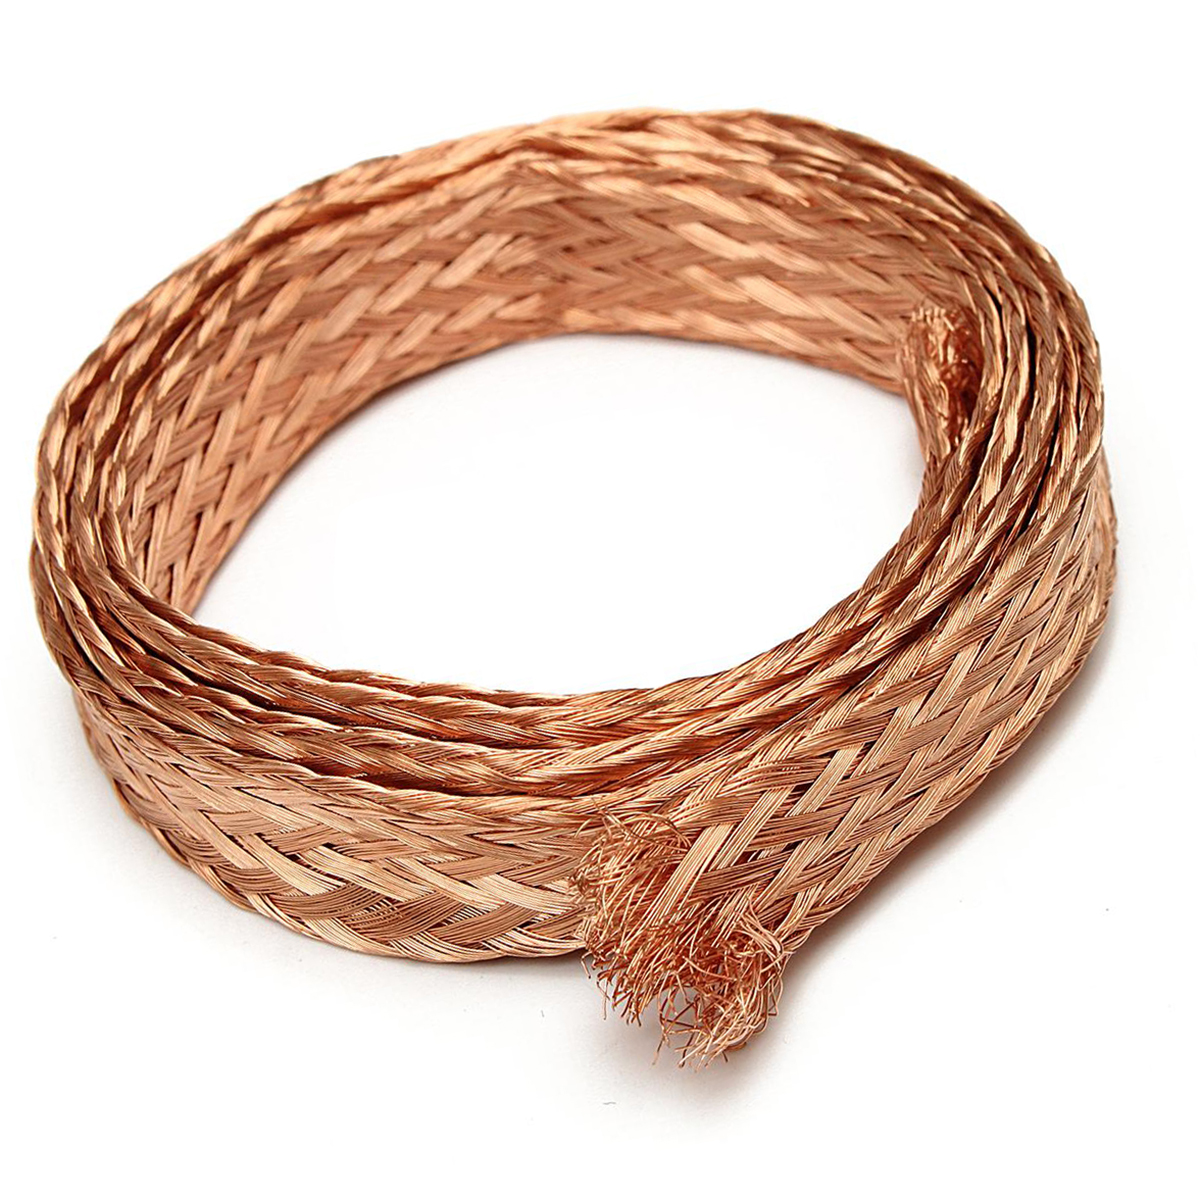 1m Flat Pure Copper Braid 3.3ft 15mm Cable Bare Copper Braid Wire Ground Lead Mayitr  1m 15mm flat tinned copper braid sleeve screening tubular cable diy